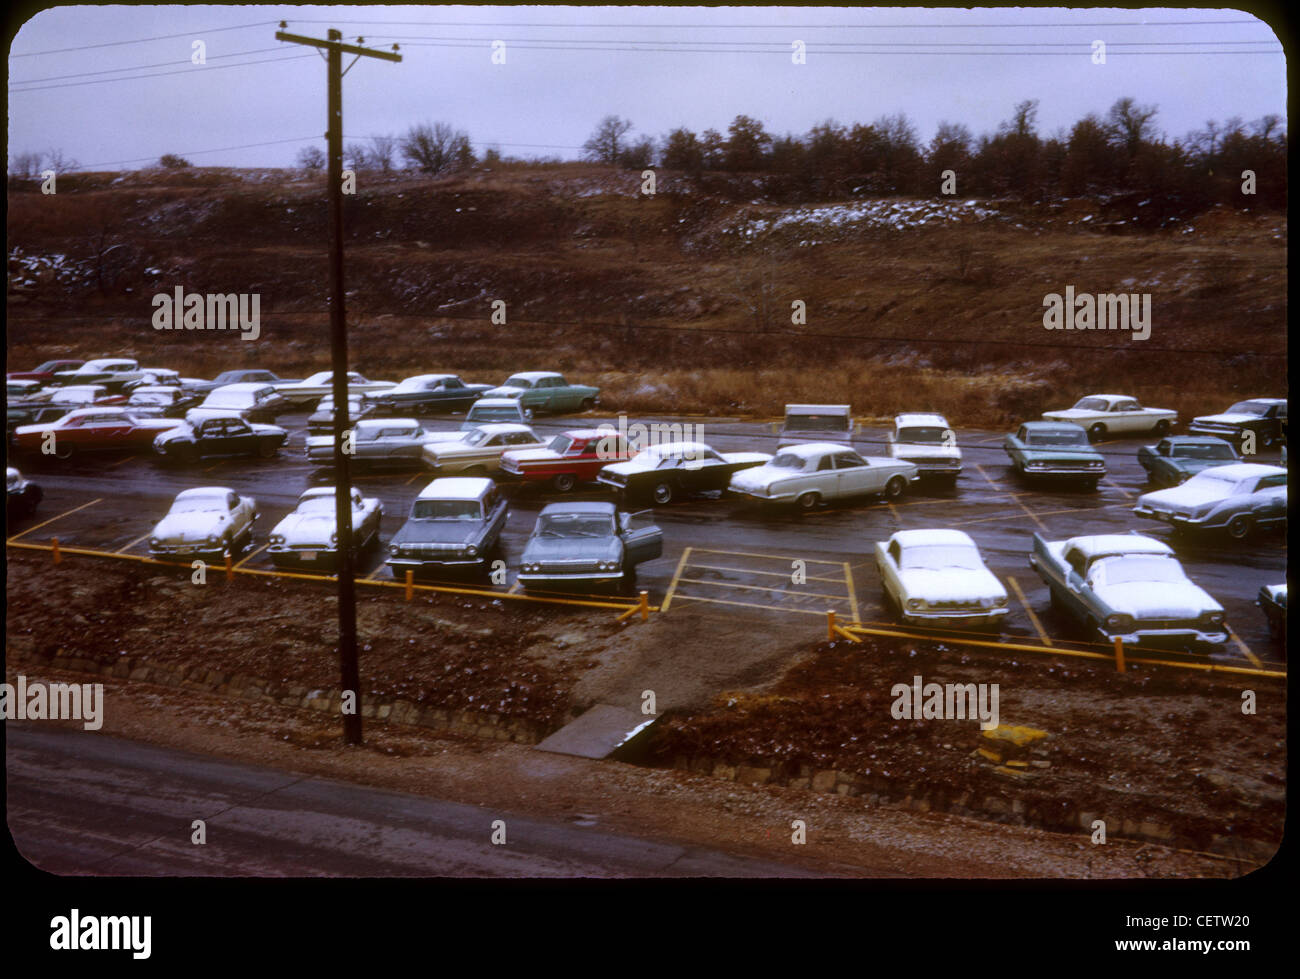 Cars parked in parking lot at Fort Wolters, Texas helicopter pilot training school during Vietnam War. 1965 mineral Stock Photo